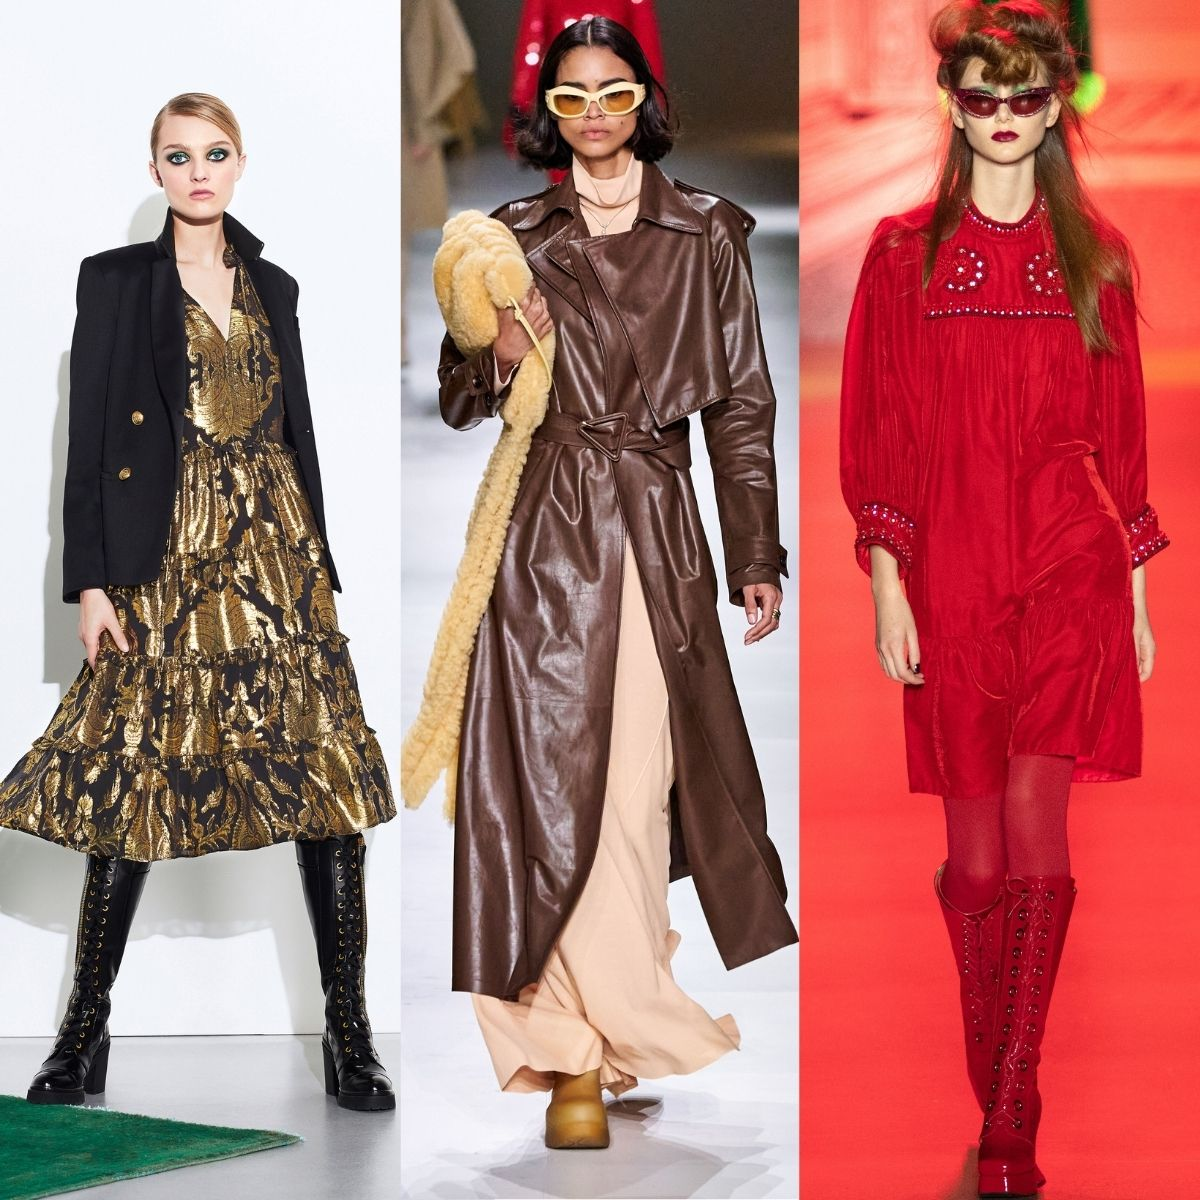 Runway images. Alice and Olivia Bottega Veneta and Anna Sui